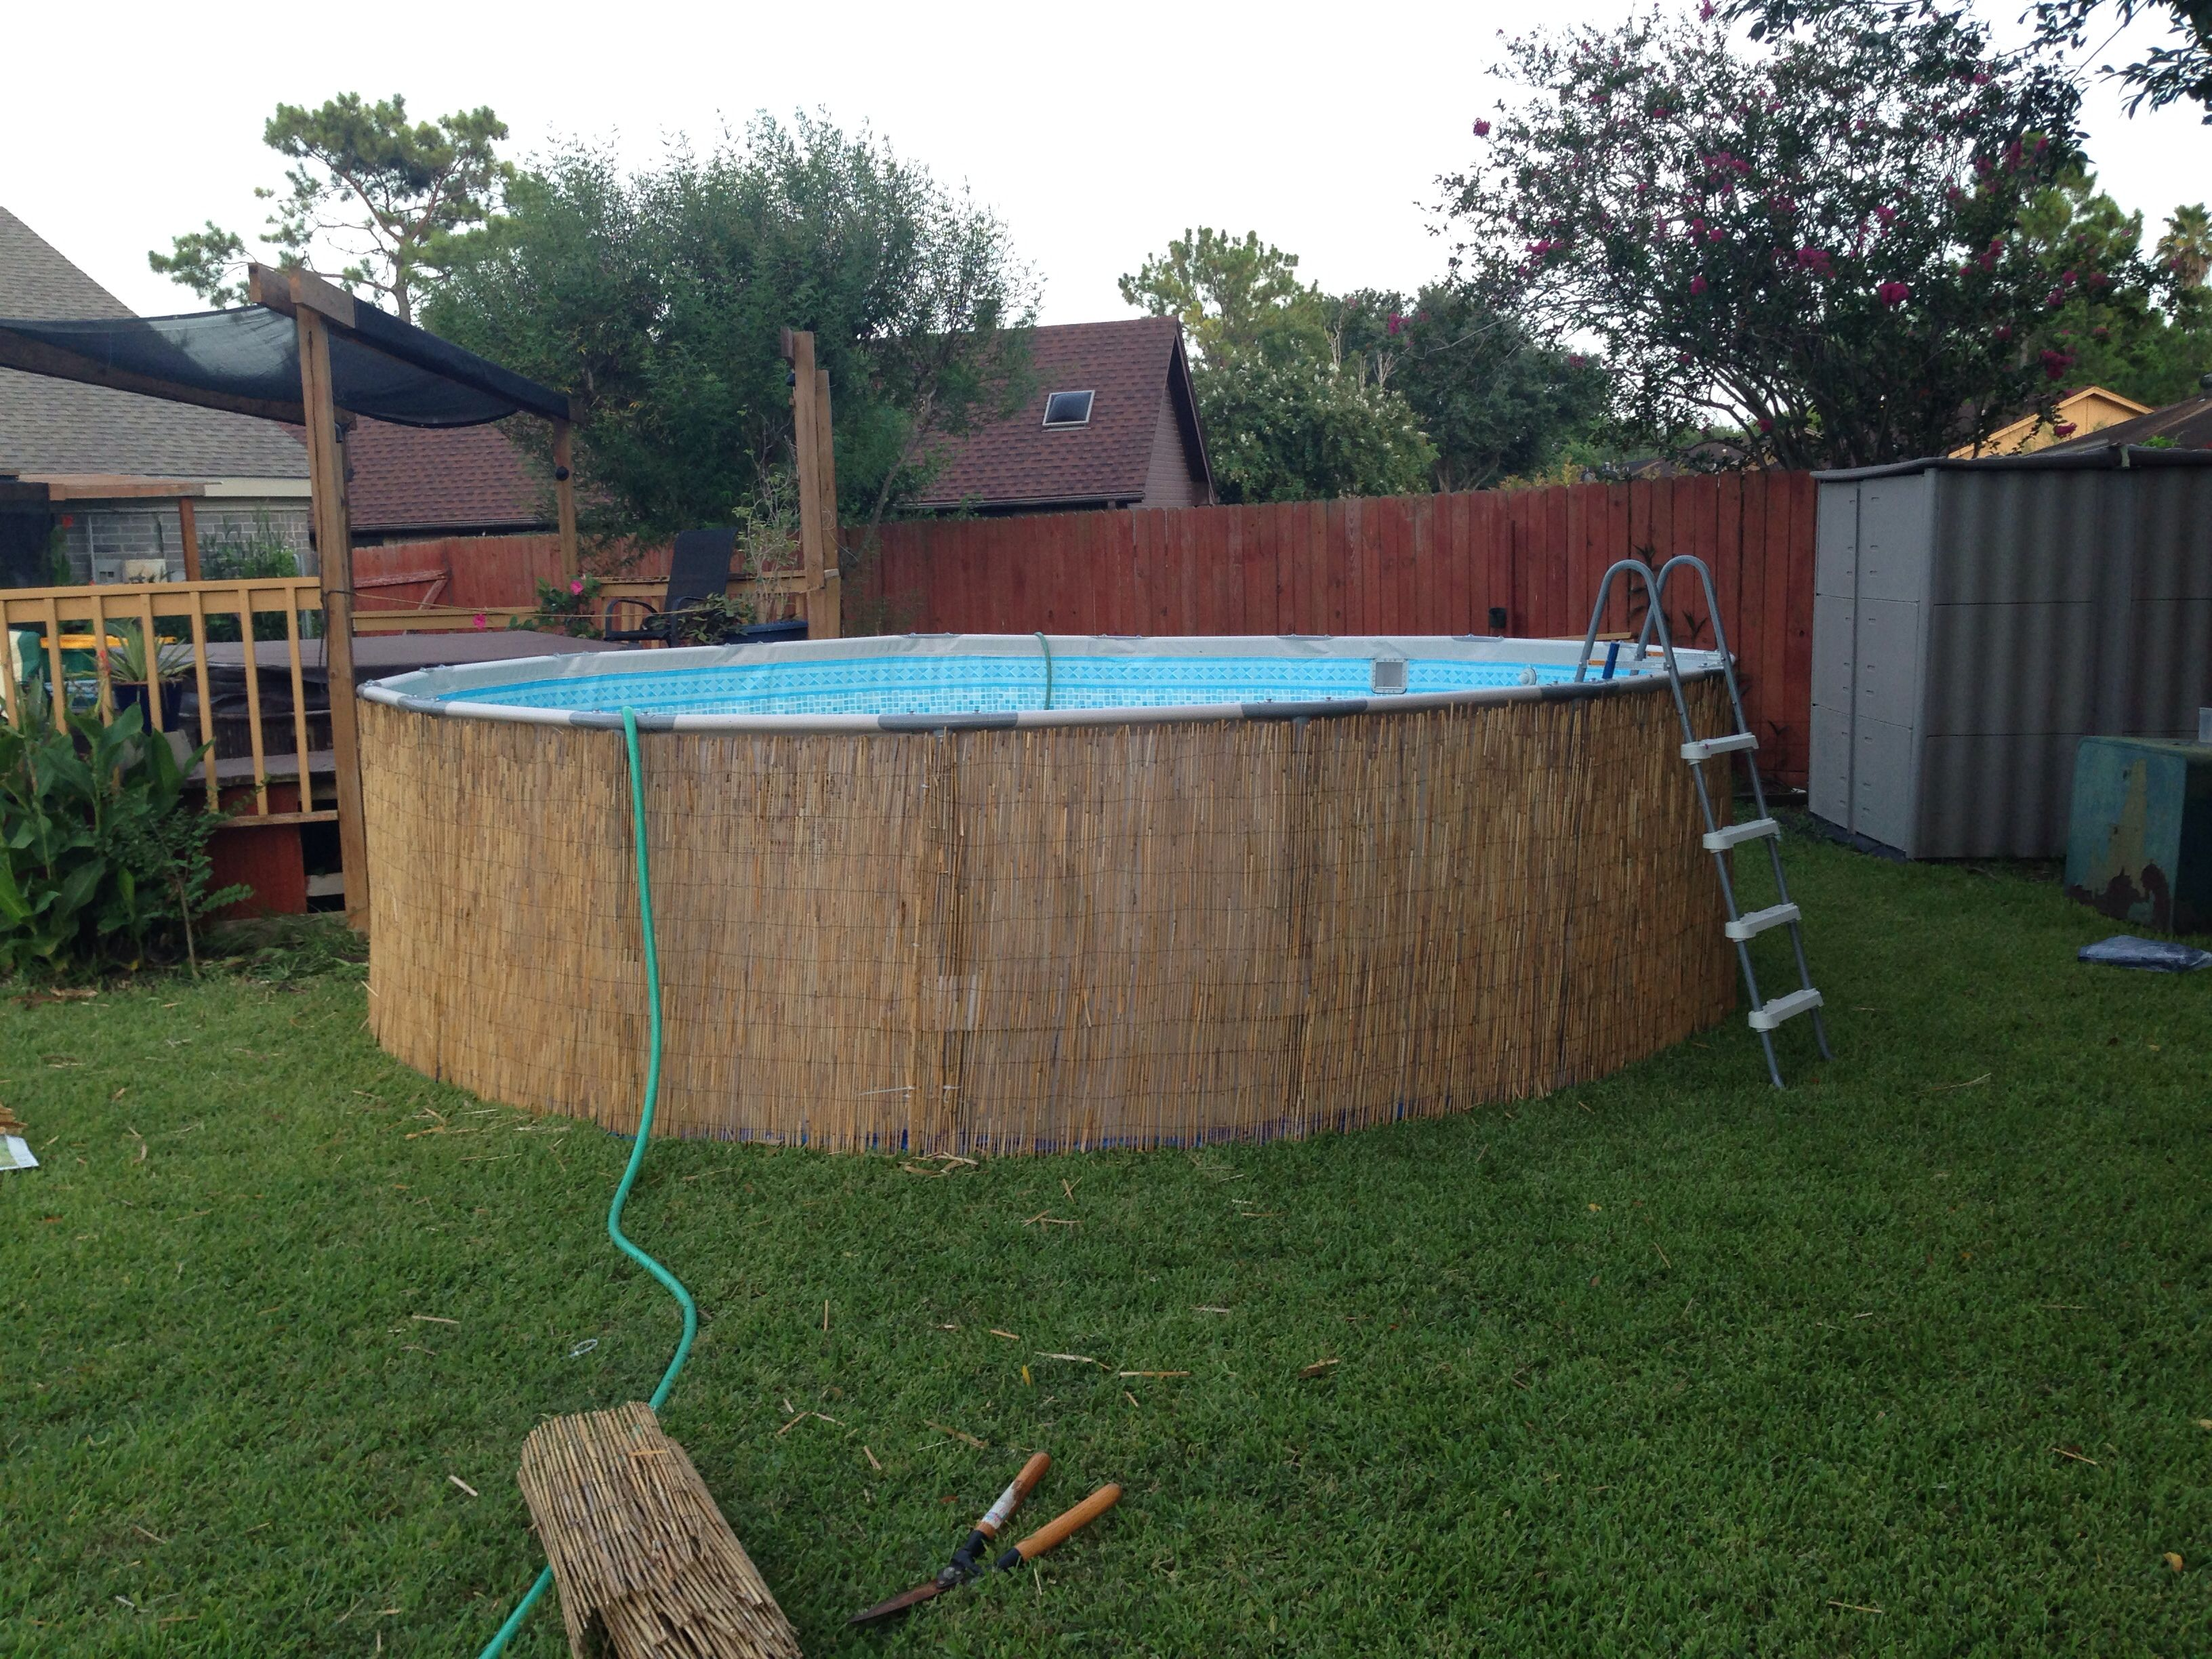 diy camoflauge above ground pool